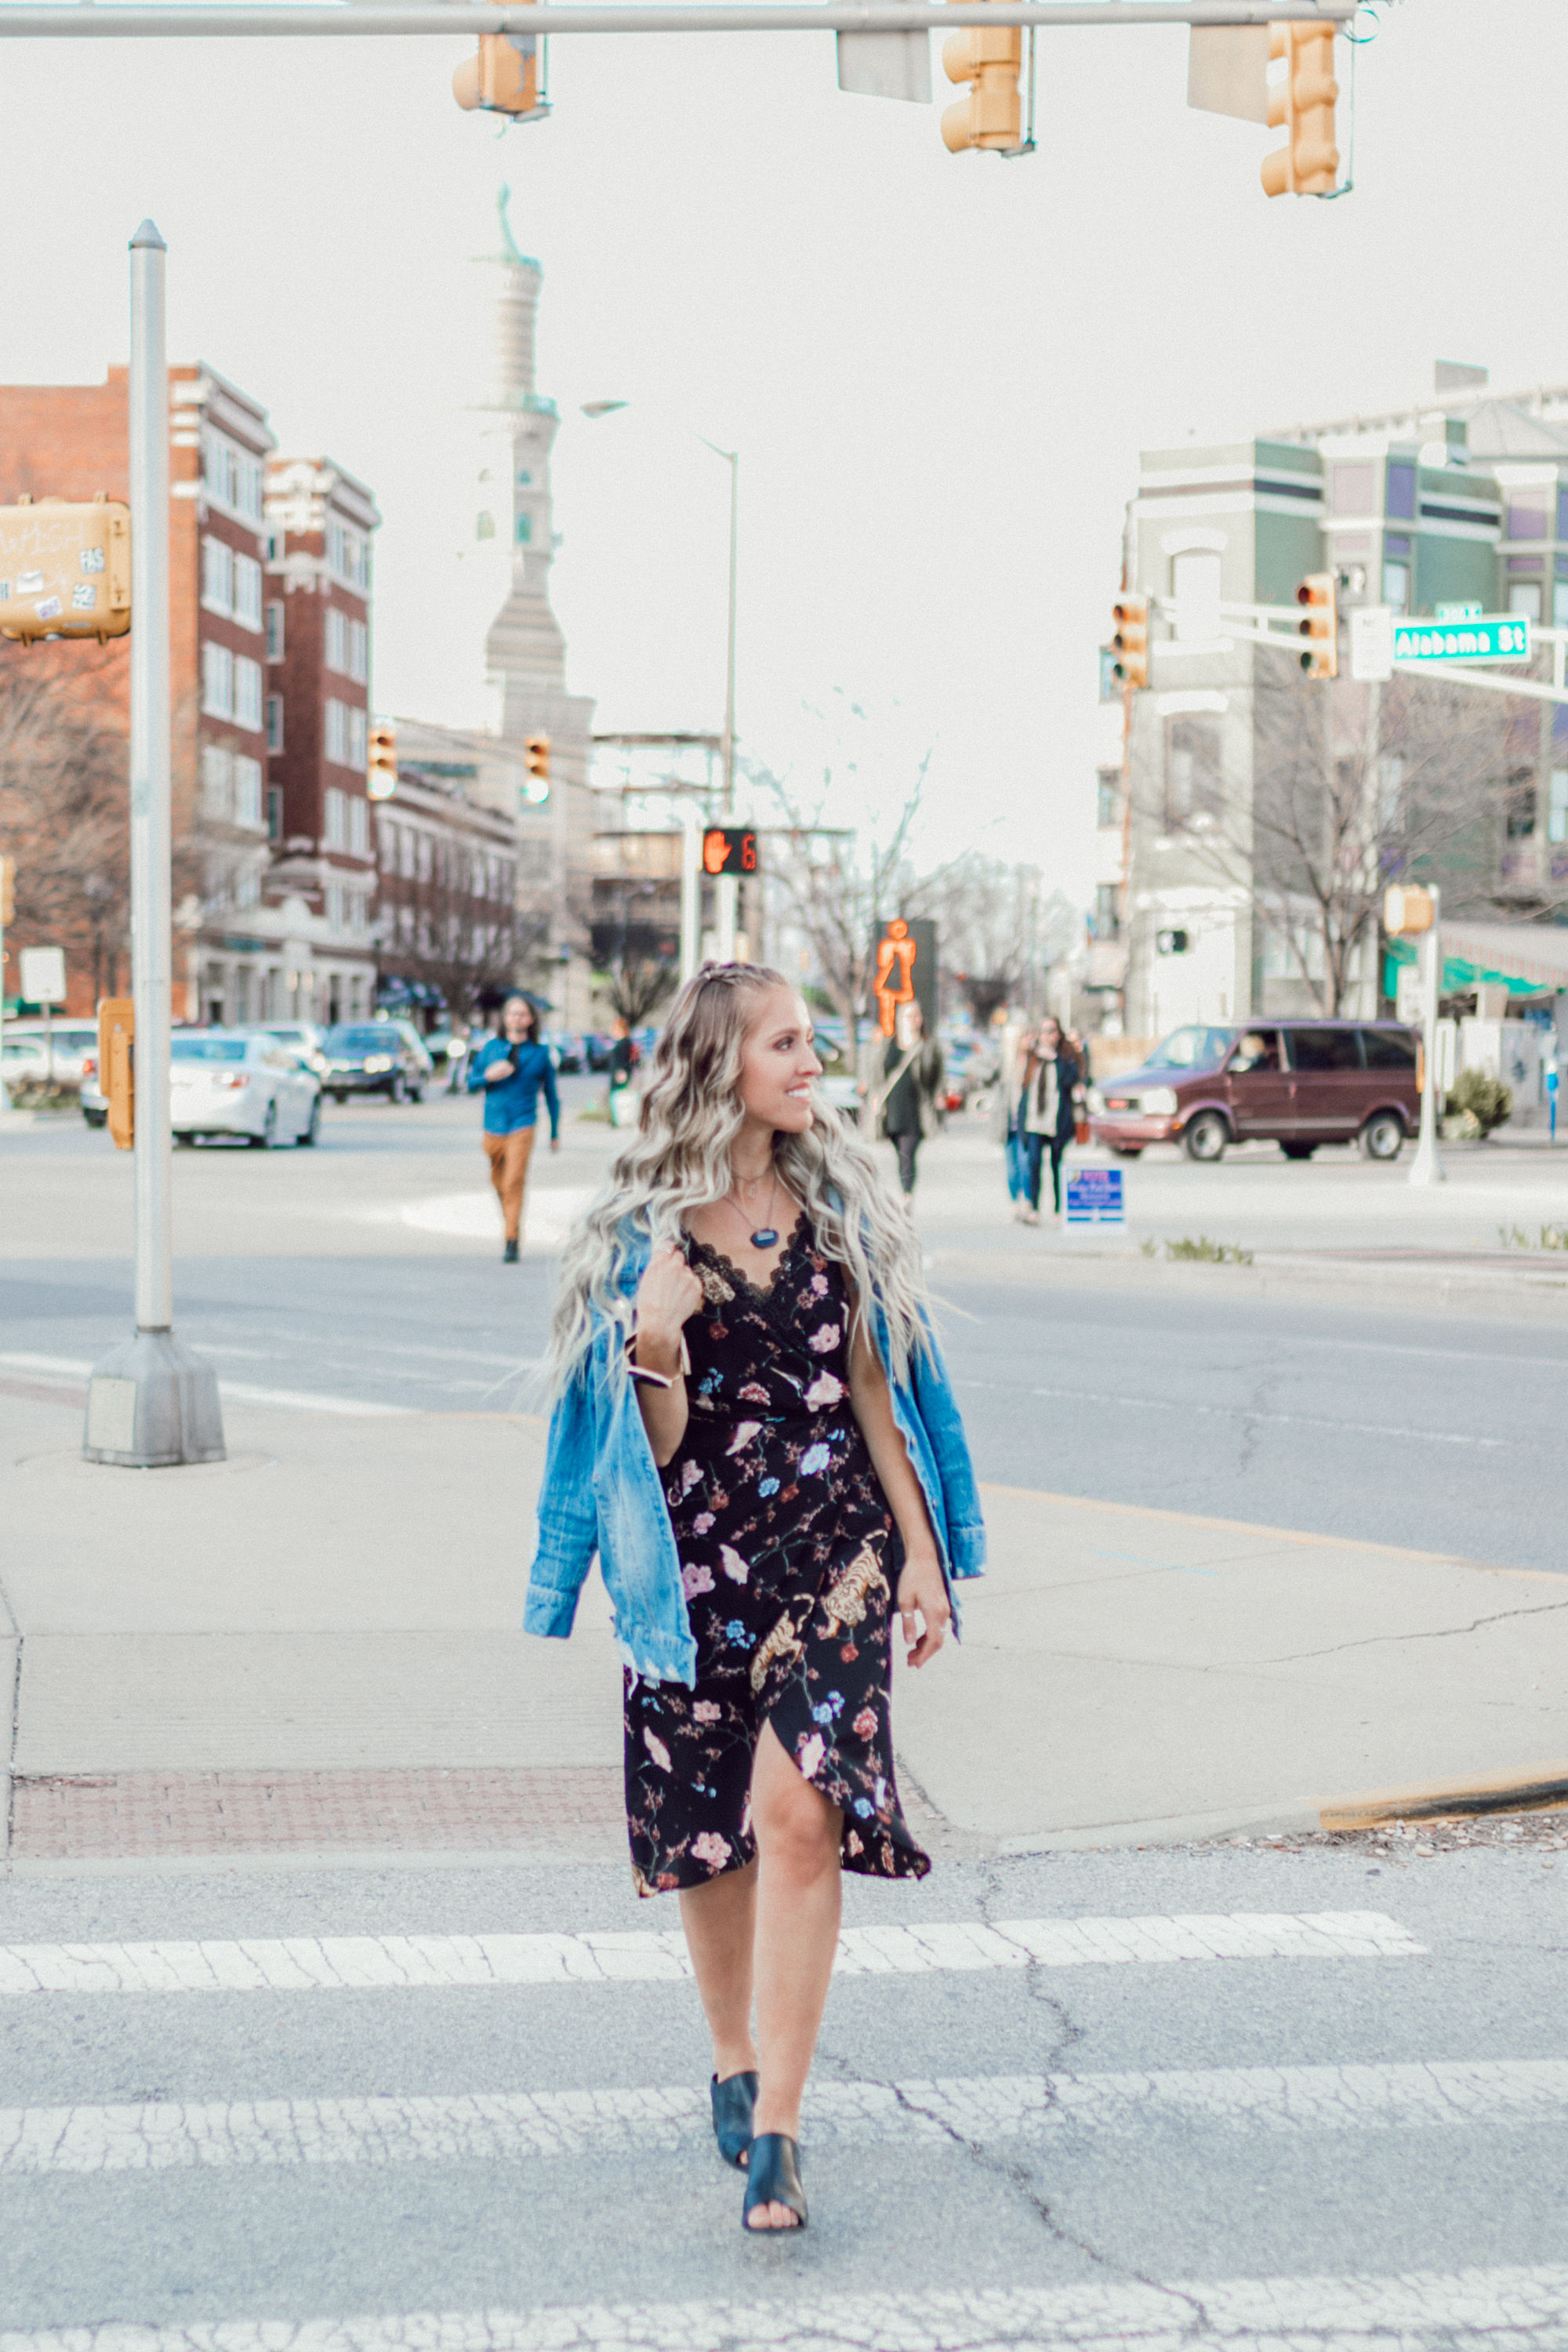 Midwest Fashion Week Recap by popular Indianapolis fashion blogger, Trendy in Indy